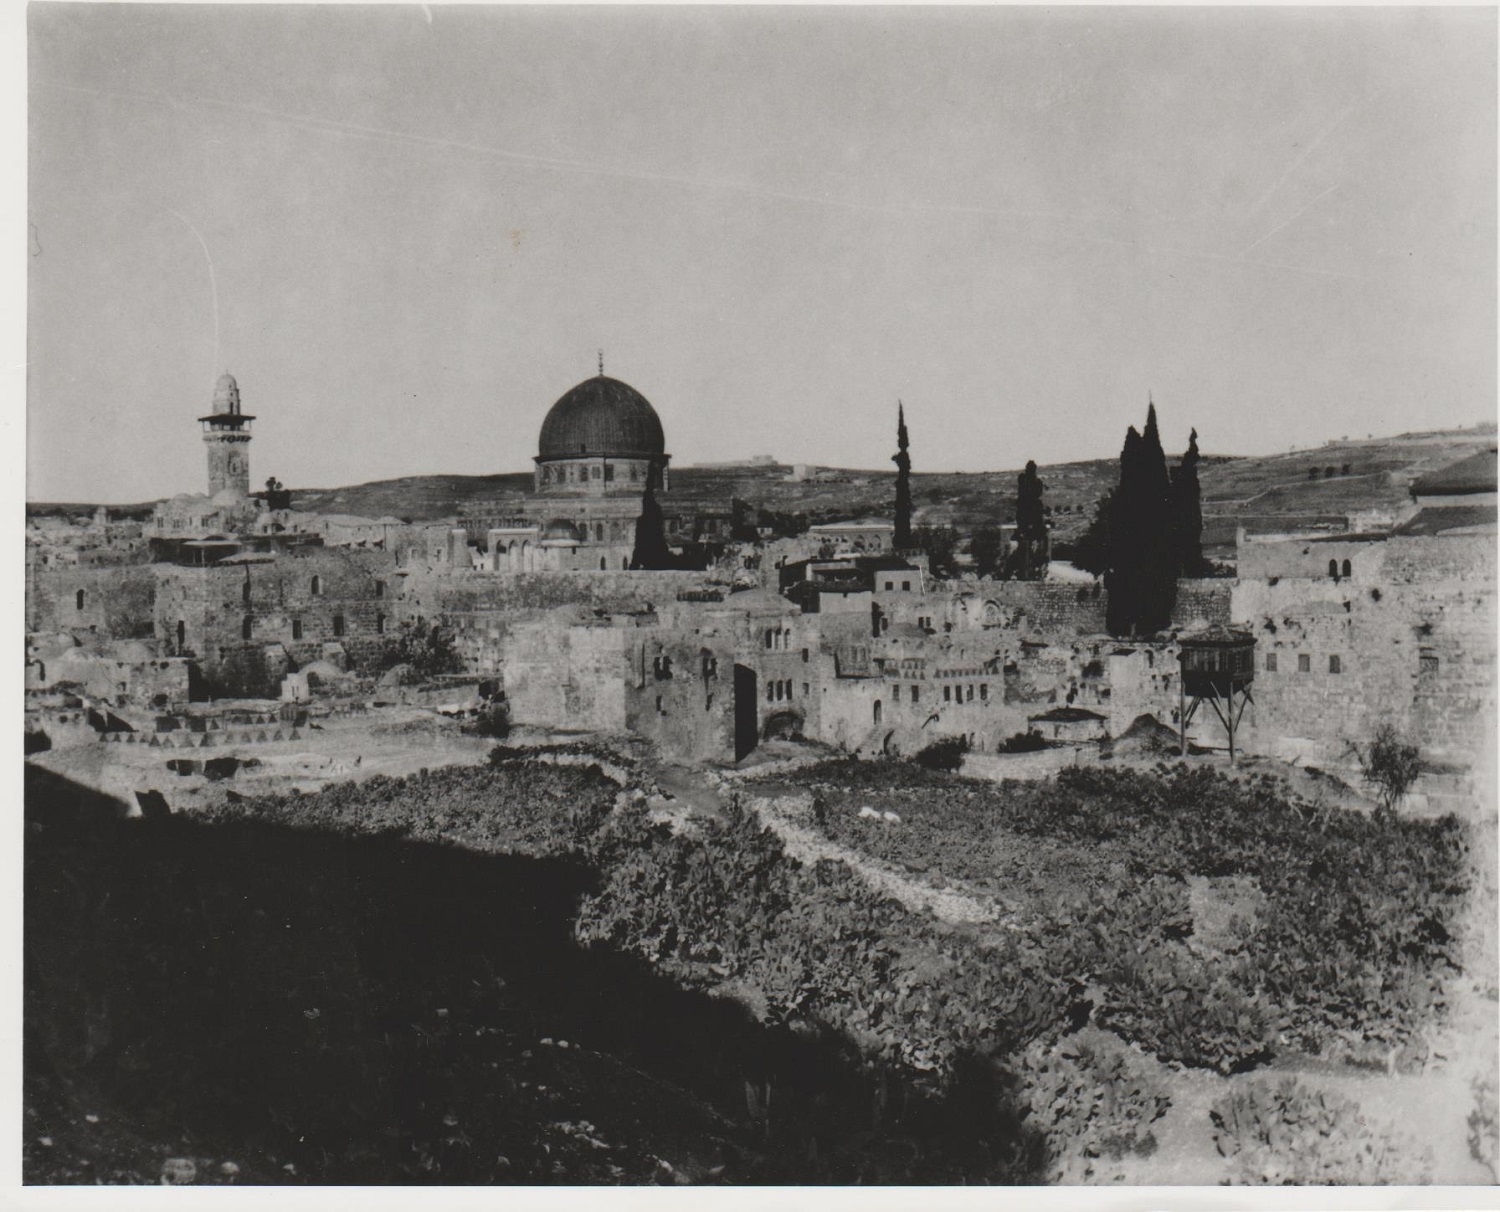 Gertrude Bell's photograph of the Old City Jerusalem, December 1899. Catalogue number A45-47.